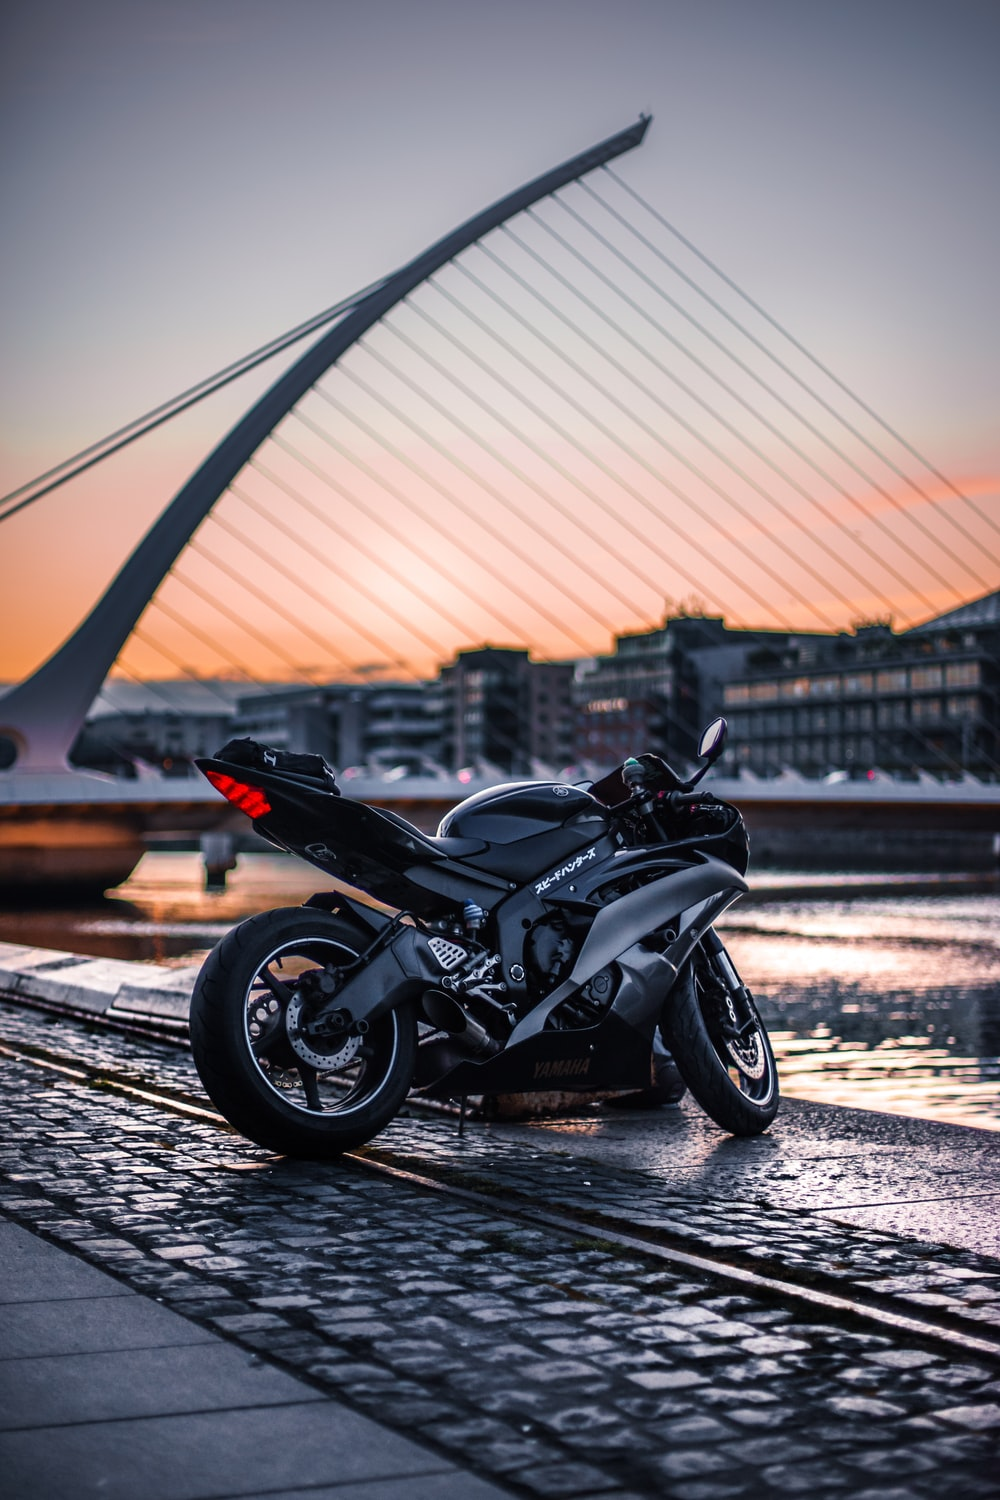 20 Best Free Motorcycle Pictures On Unsplash